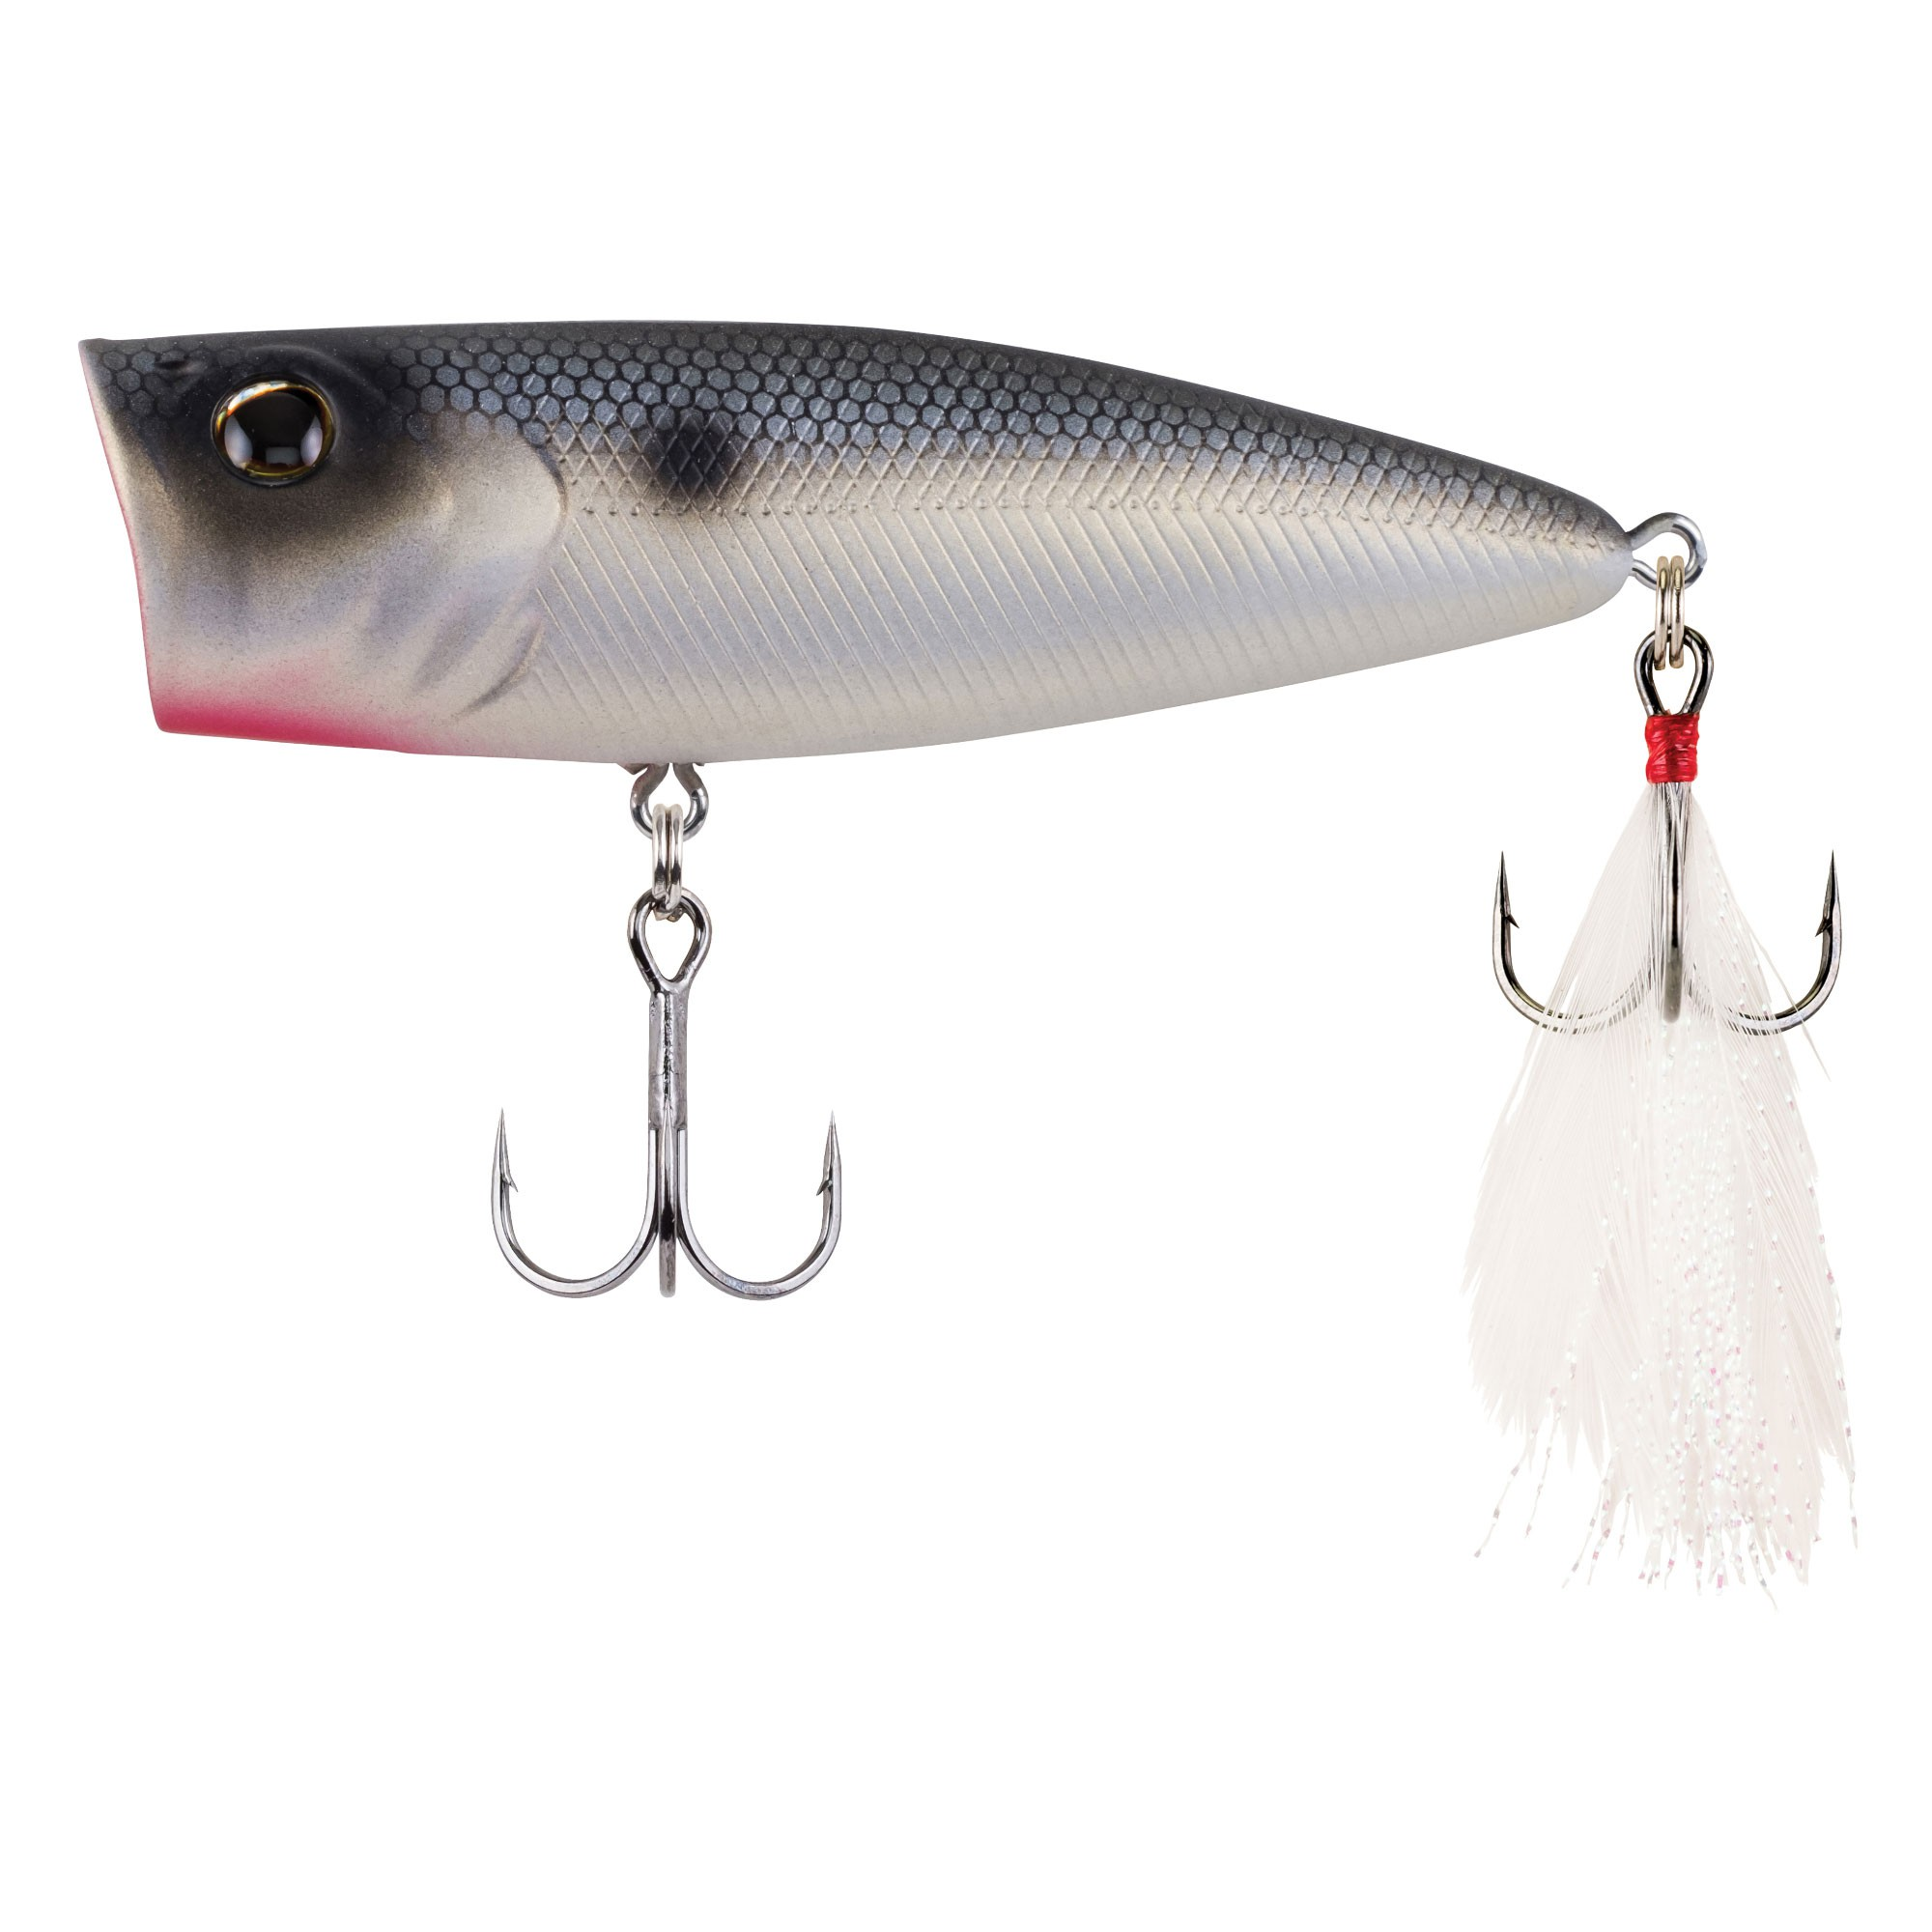 Berkley Bullet Pop mf shad